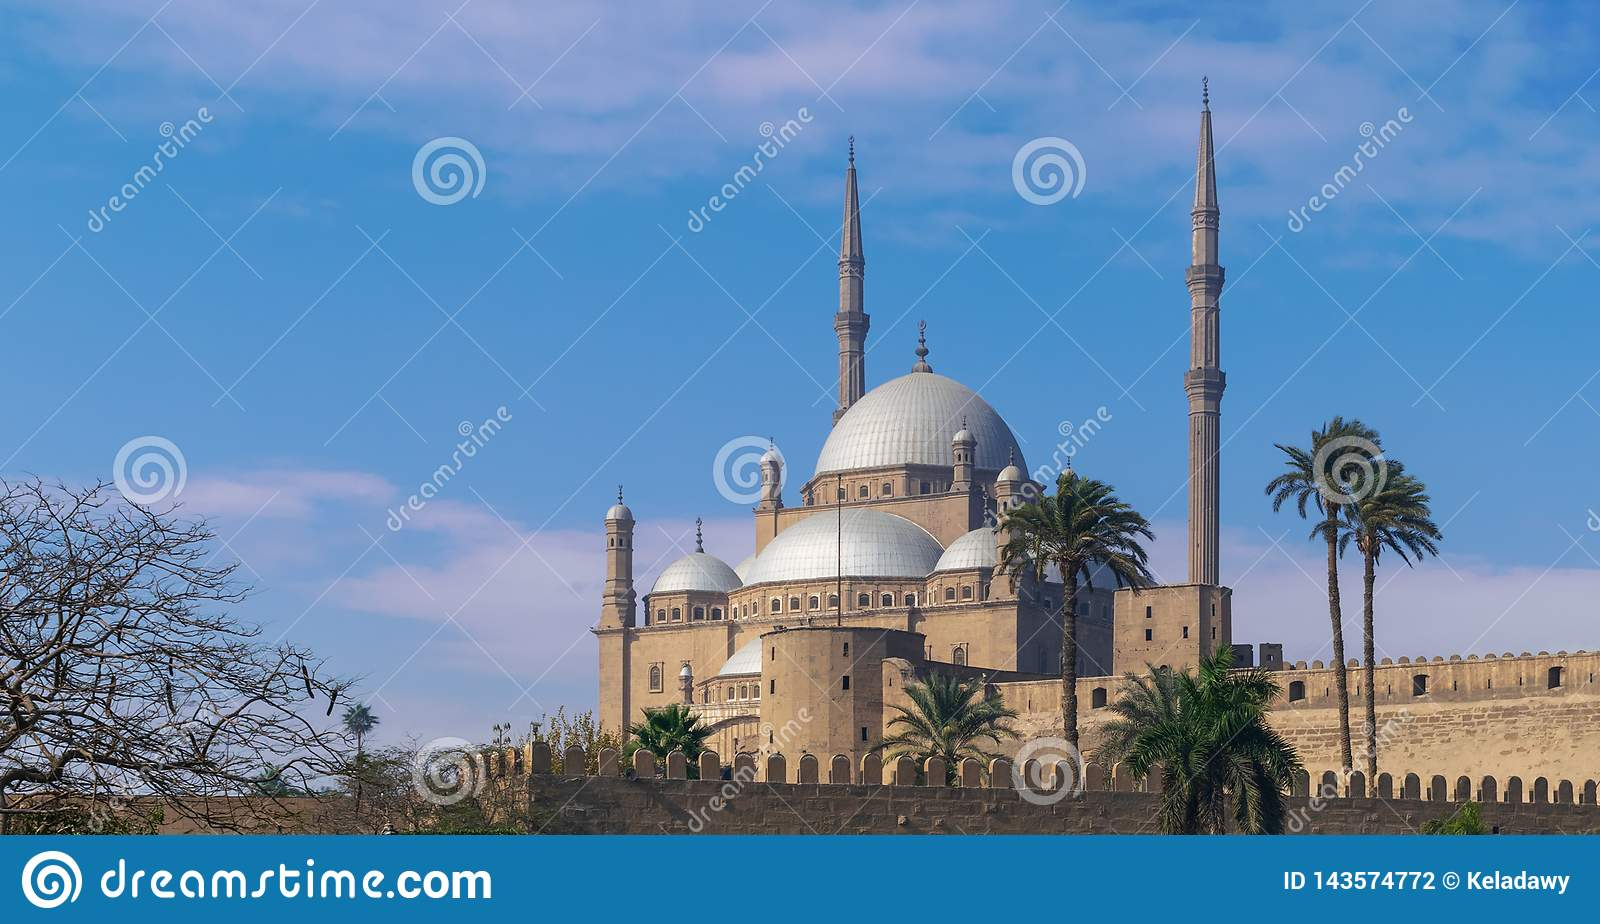 Ottoman style Great Mosque of Muhammad Ali, Citadel of Cairo, commissioned by Muhammad Ali Pasha, Cairo, Egypt